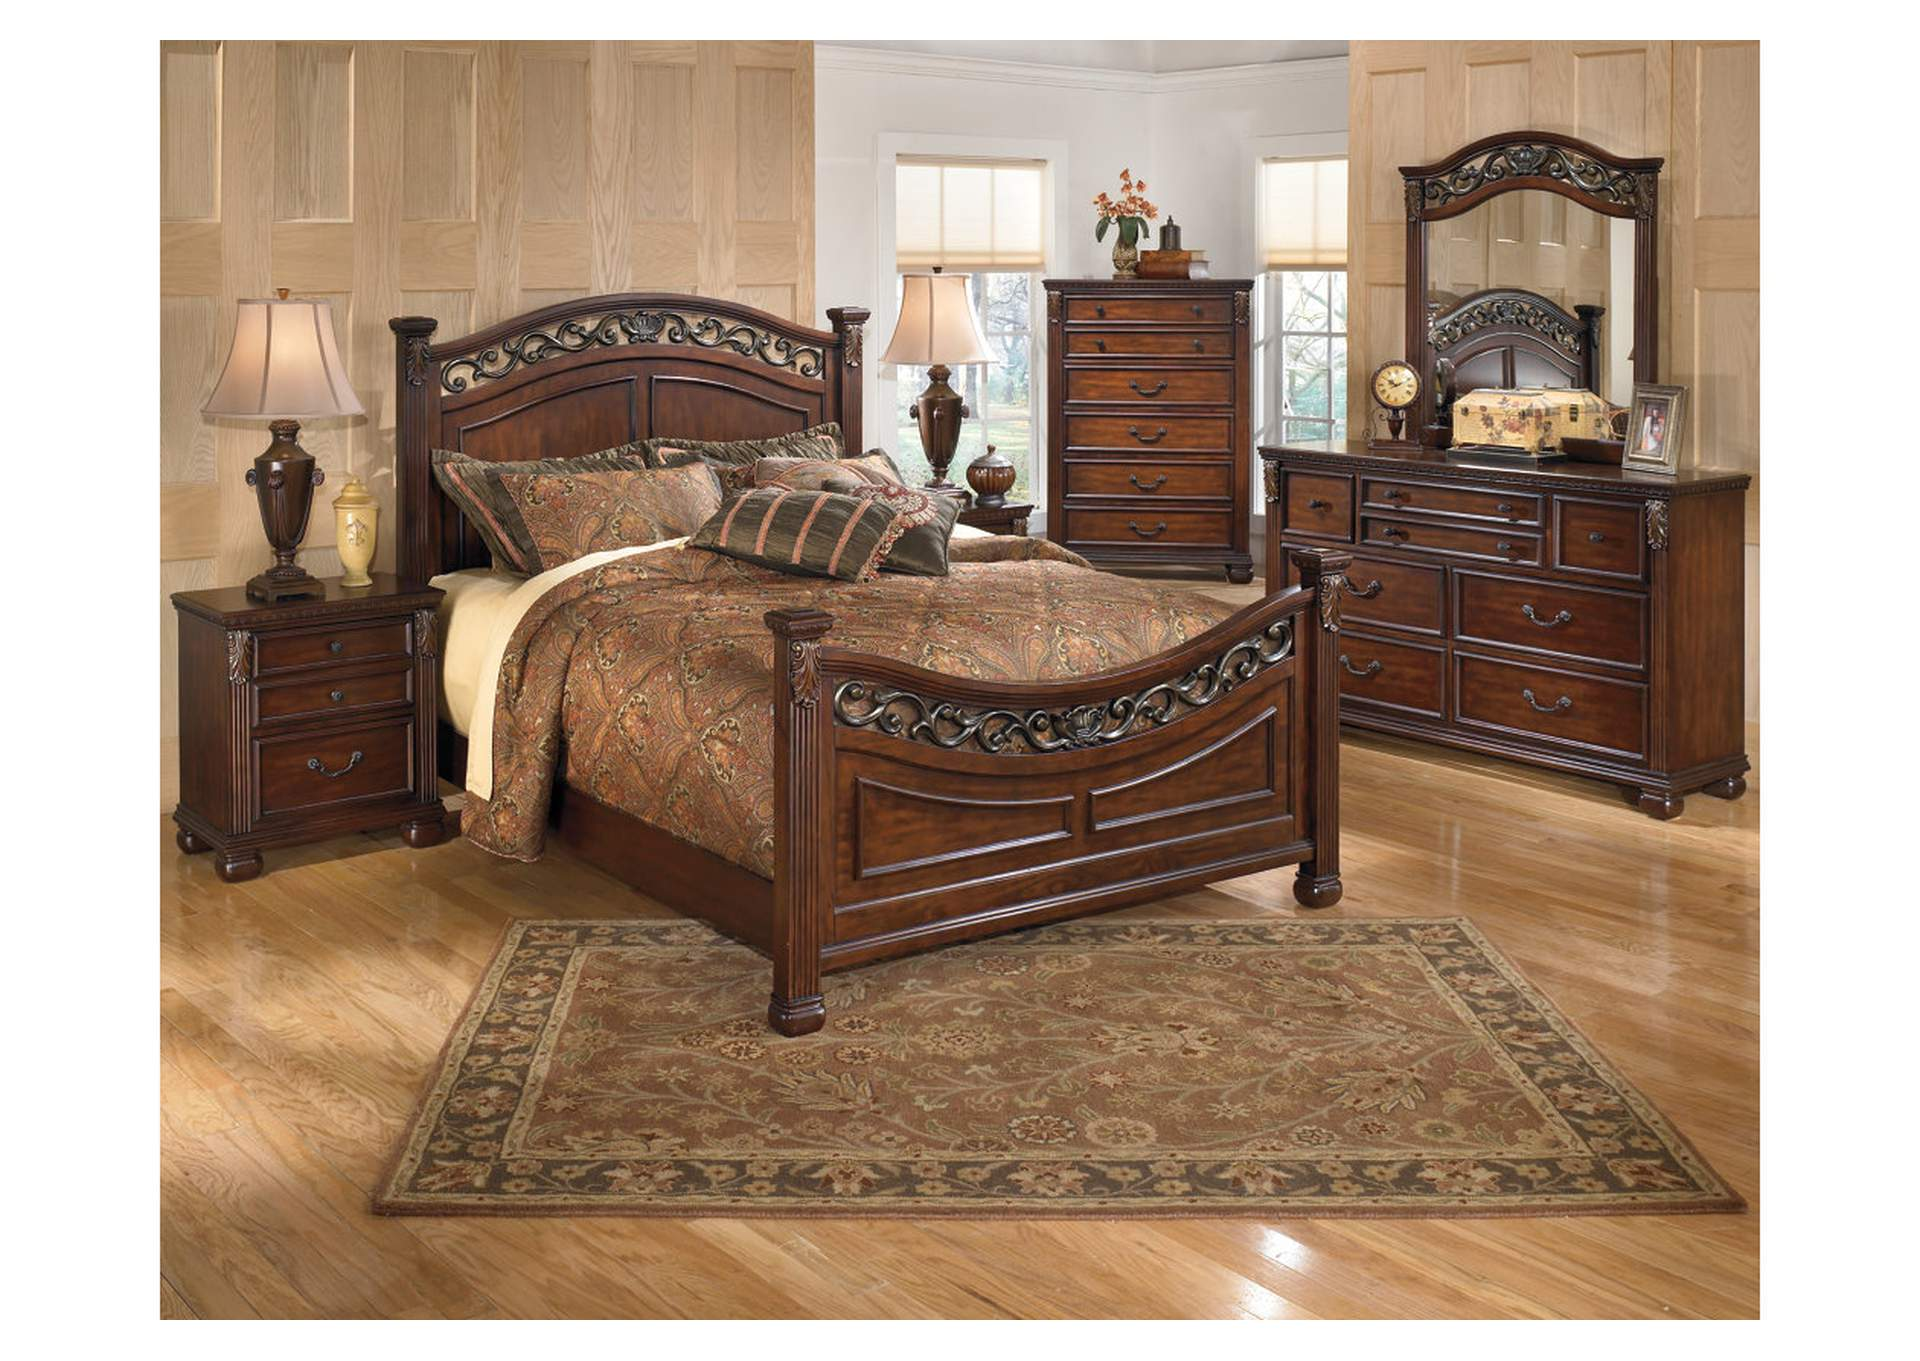 Leahlyn California King Panel Bed w/Dresser, Mirror & Drawer Chest,Signature Design By Ashley